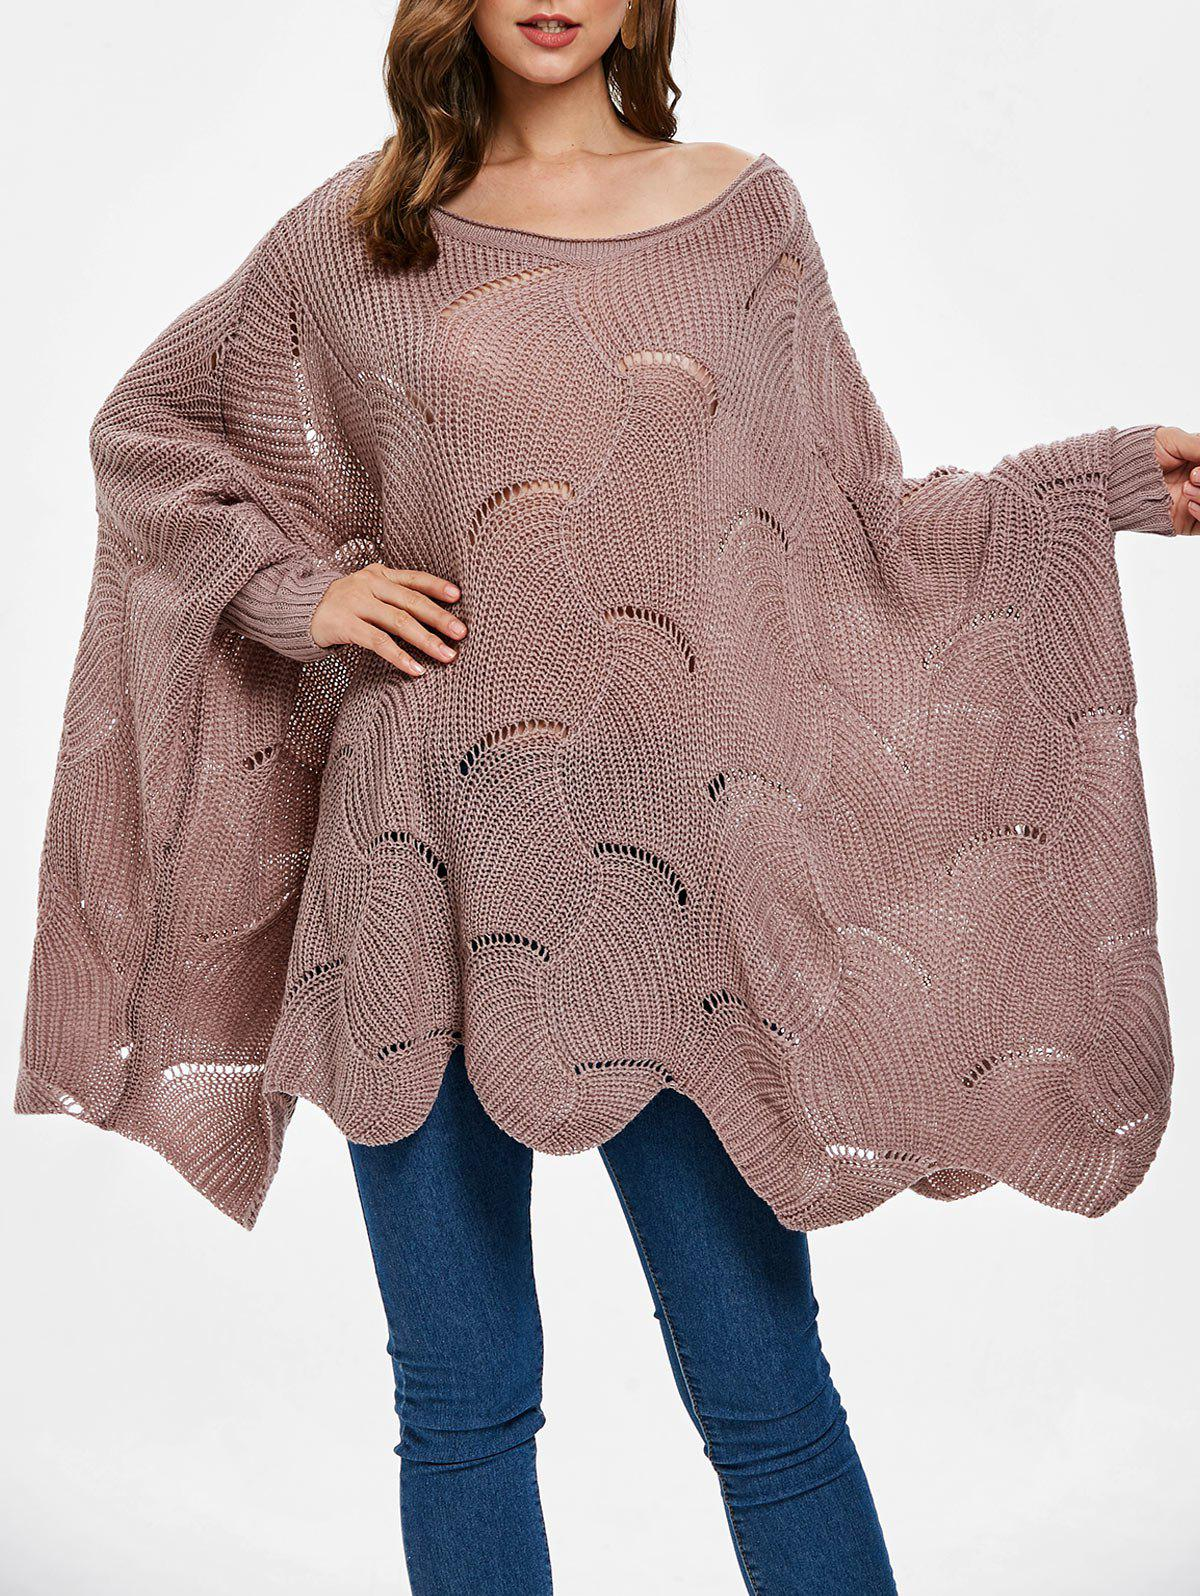 Discount Batwing Sleeve Crochet Sweater